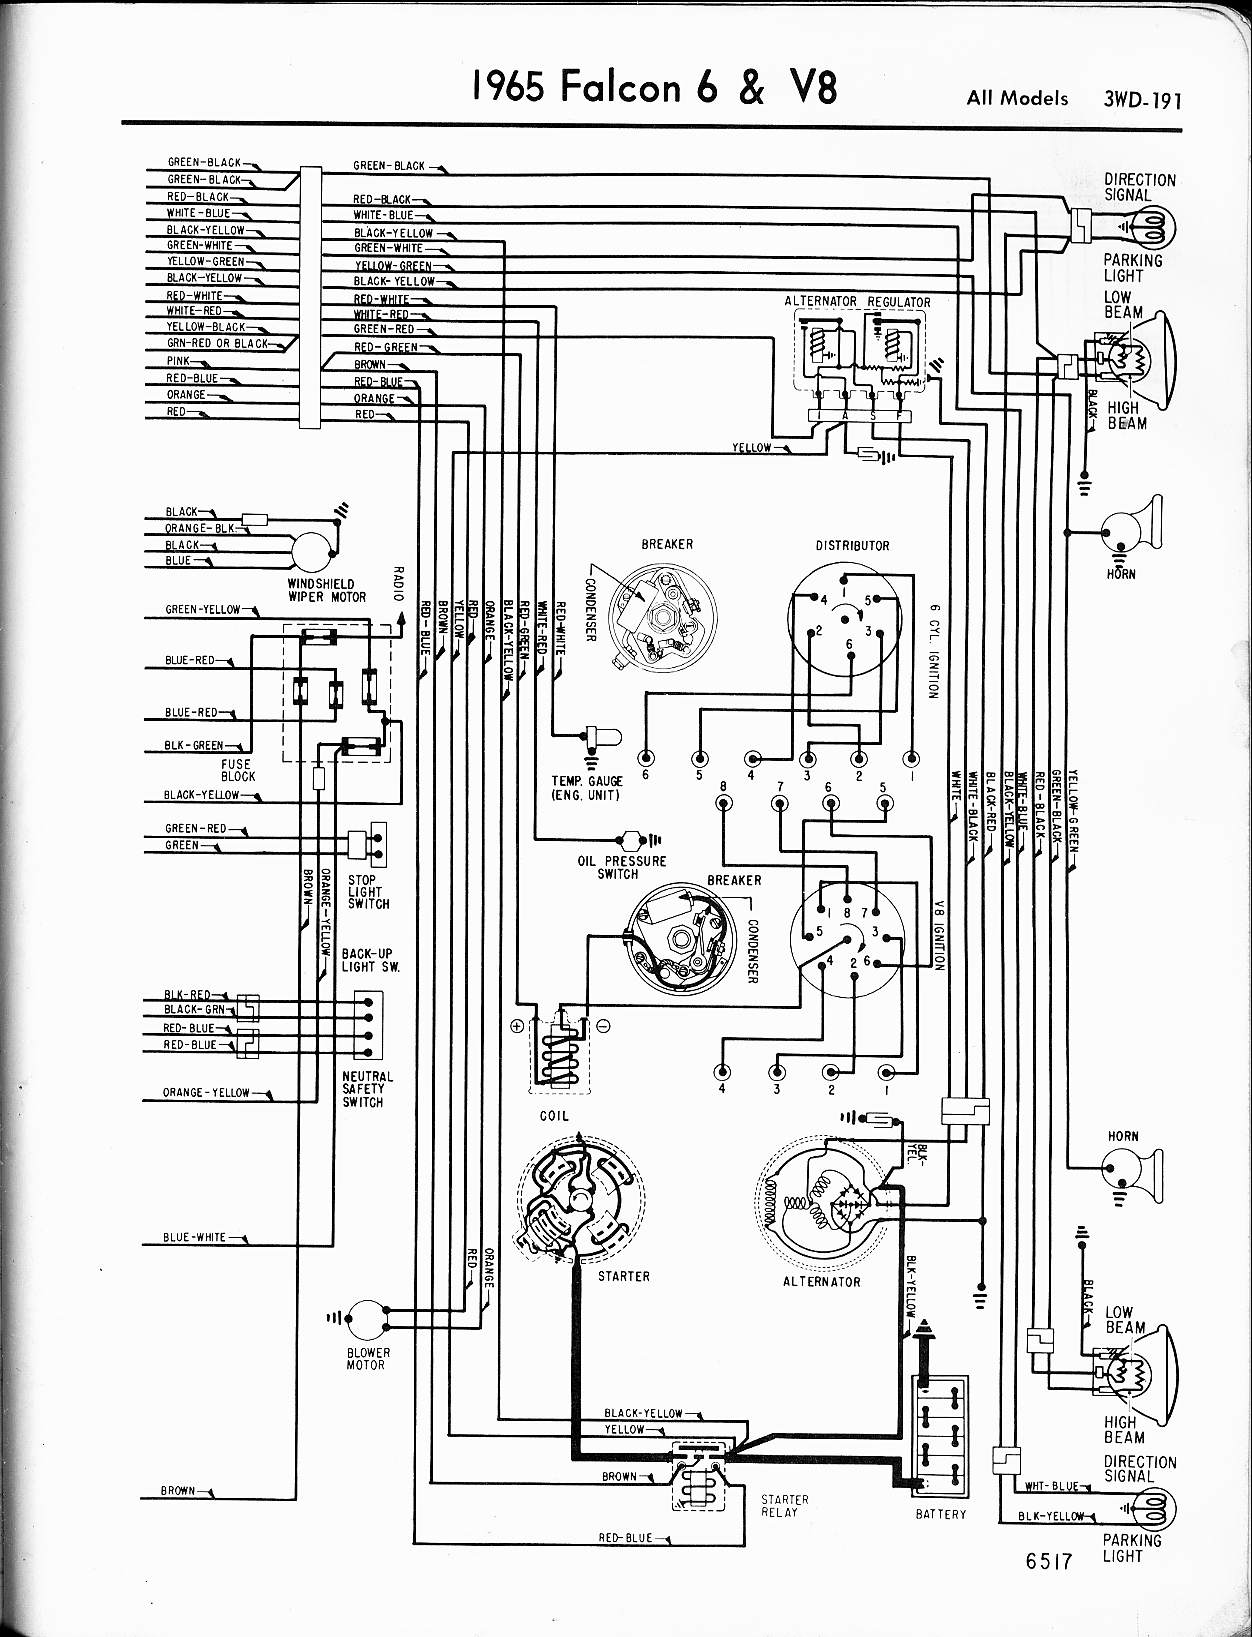 MWire5765 191 engine wire diagram for 65 falcon 65 falcon hot rod \u2022 wiring 1965 ford mustang wiring diagrams at gsmportal.co